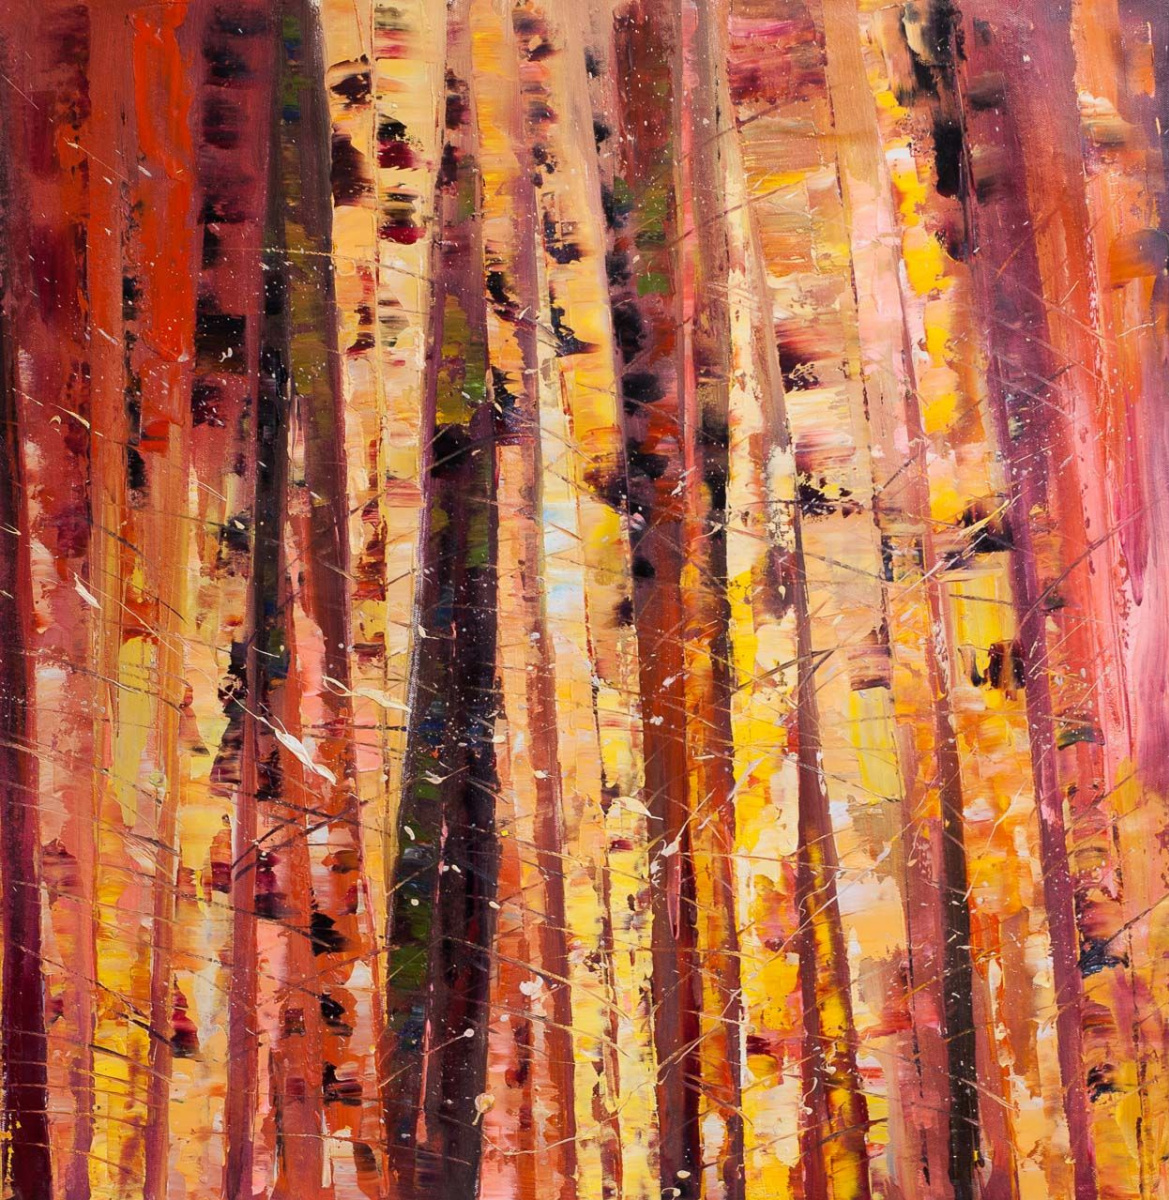 (no name). Patchwork. Birch trees N5. Red